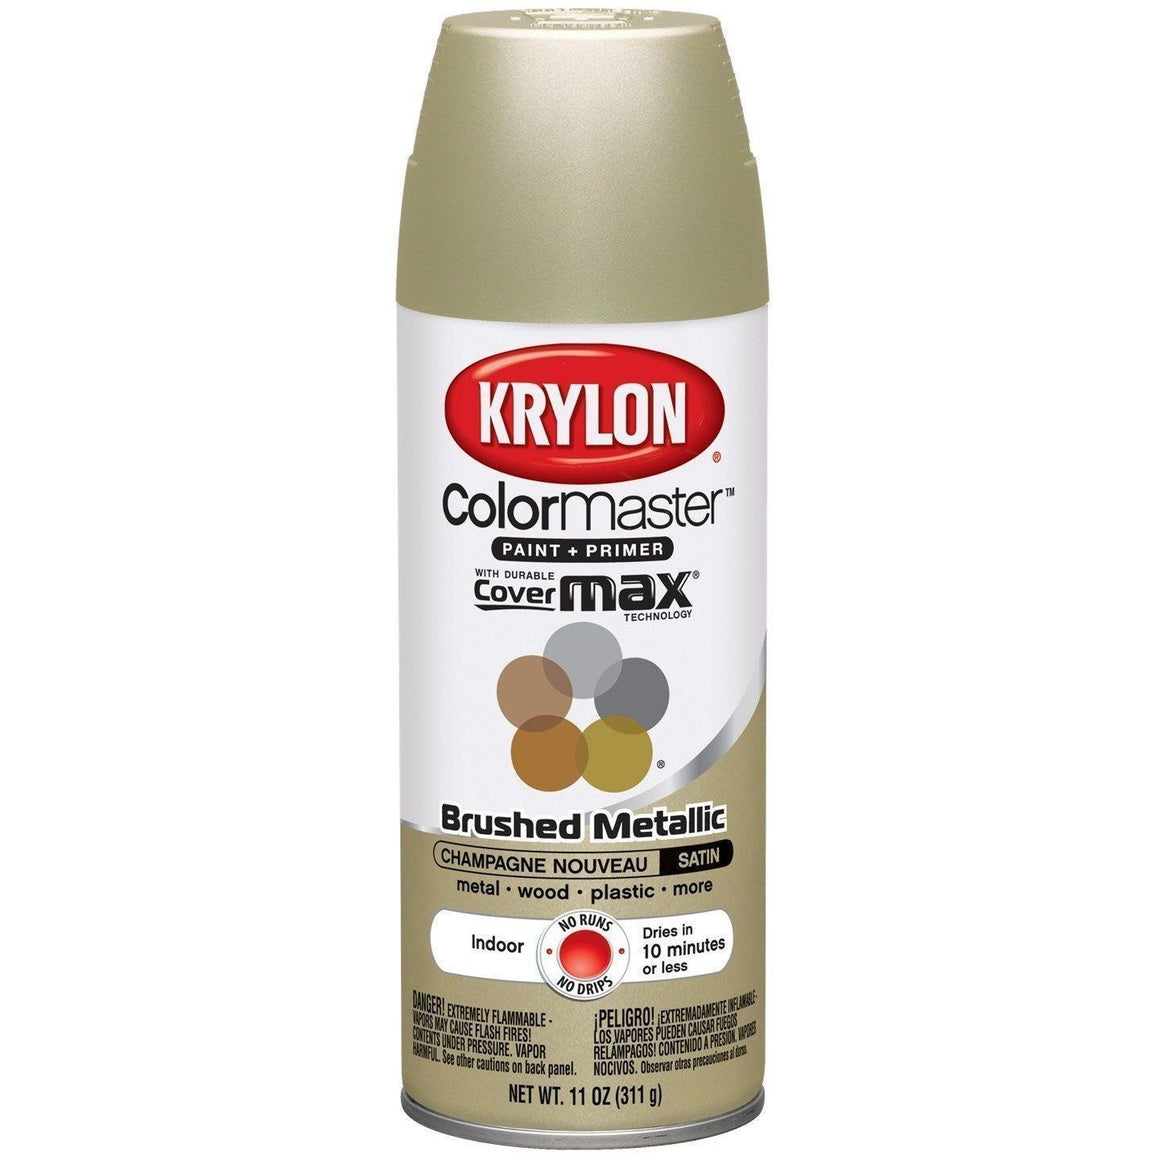 Krylon ColorMaster Brushed Metallic Champagne Nouveau, 11 oz, K05125302